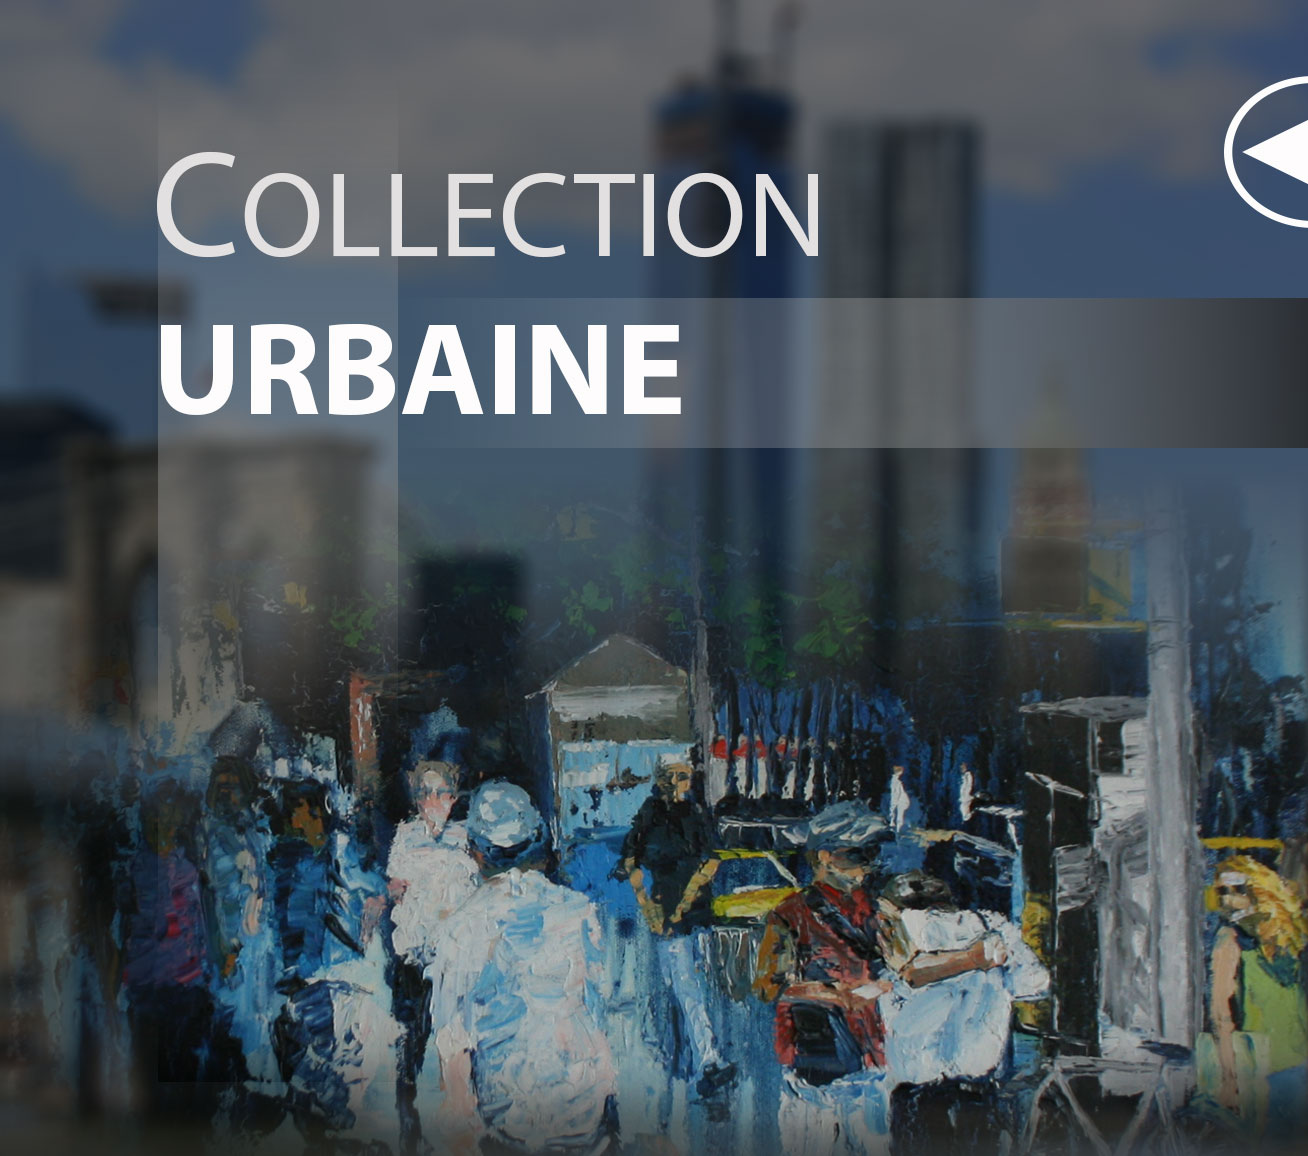 collection urbaine